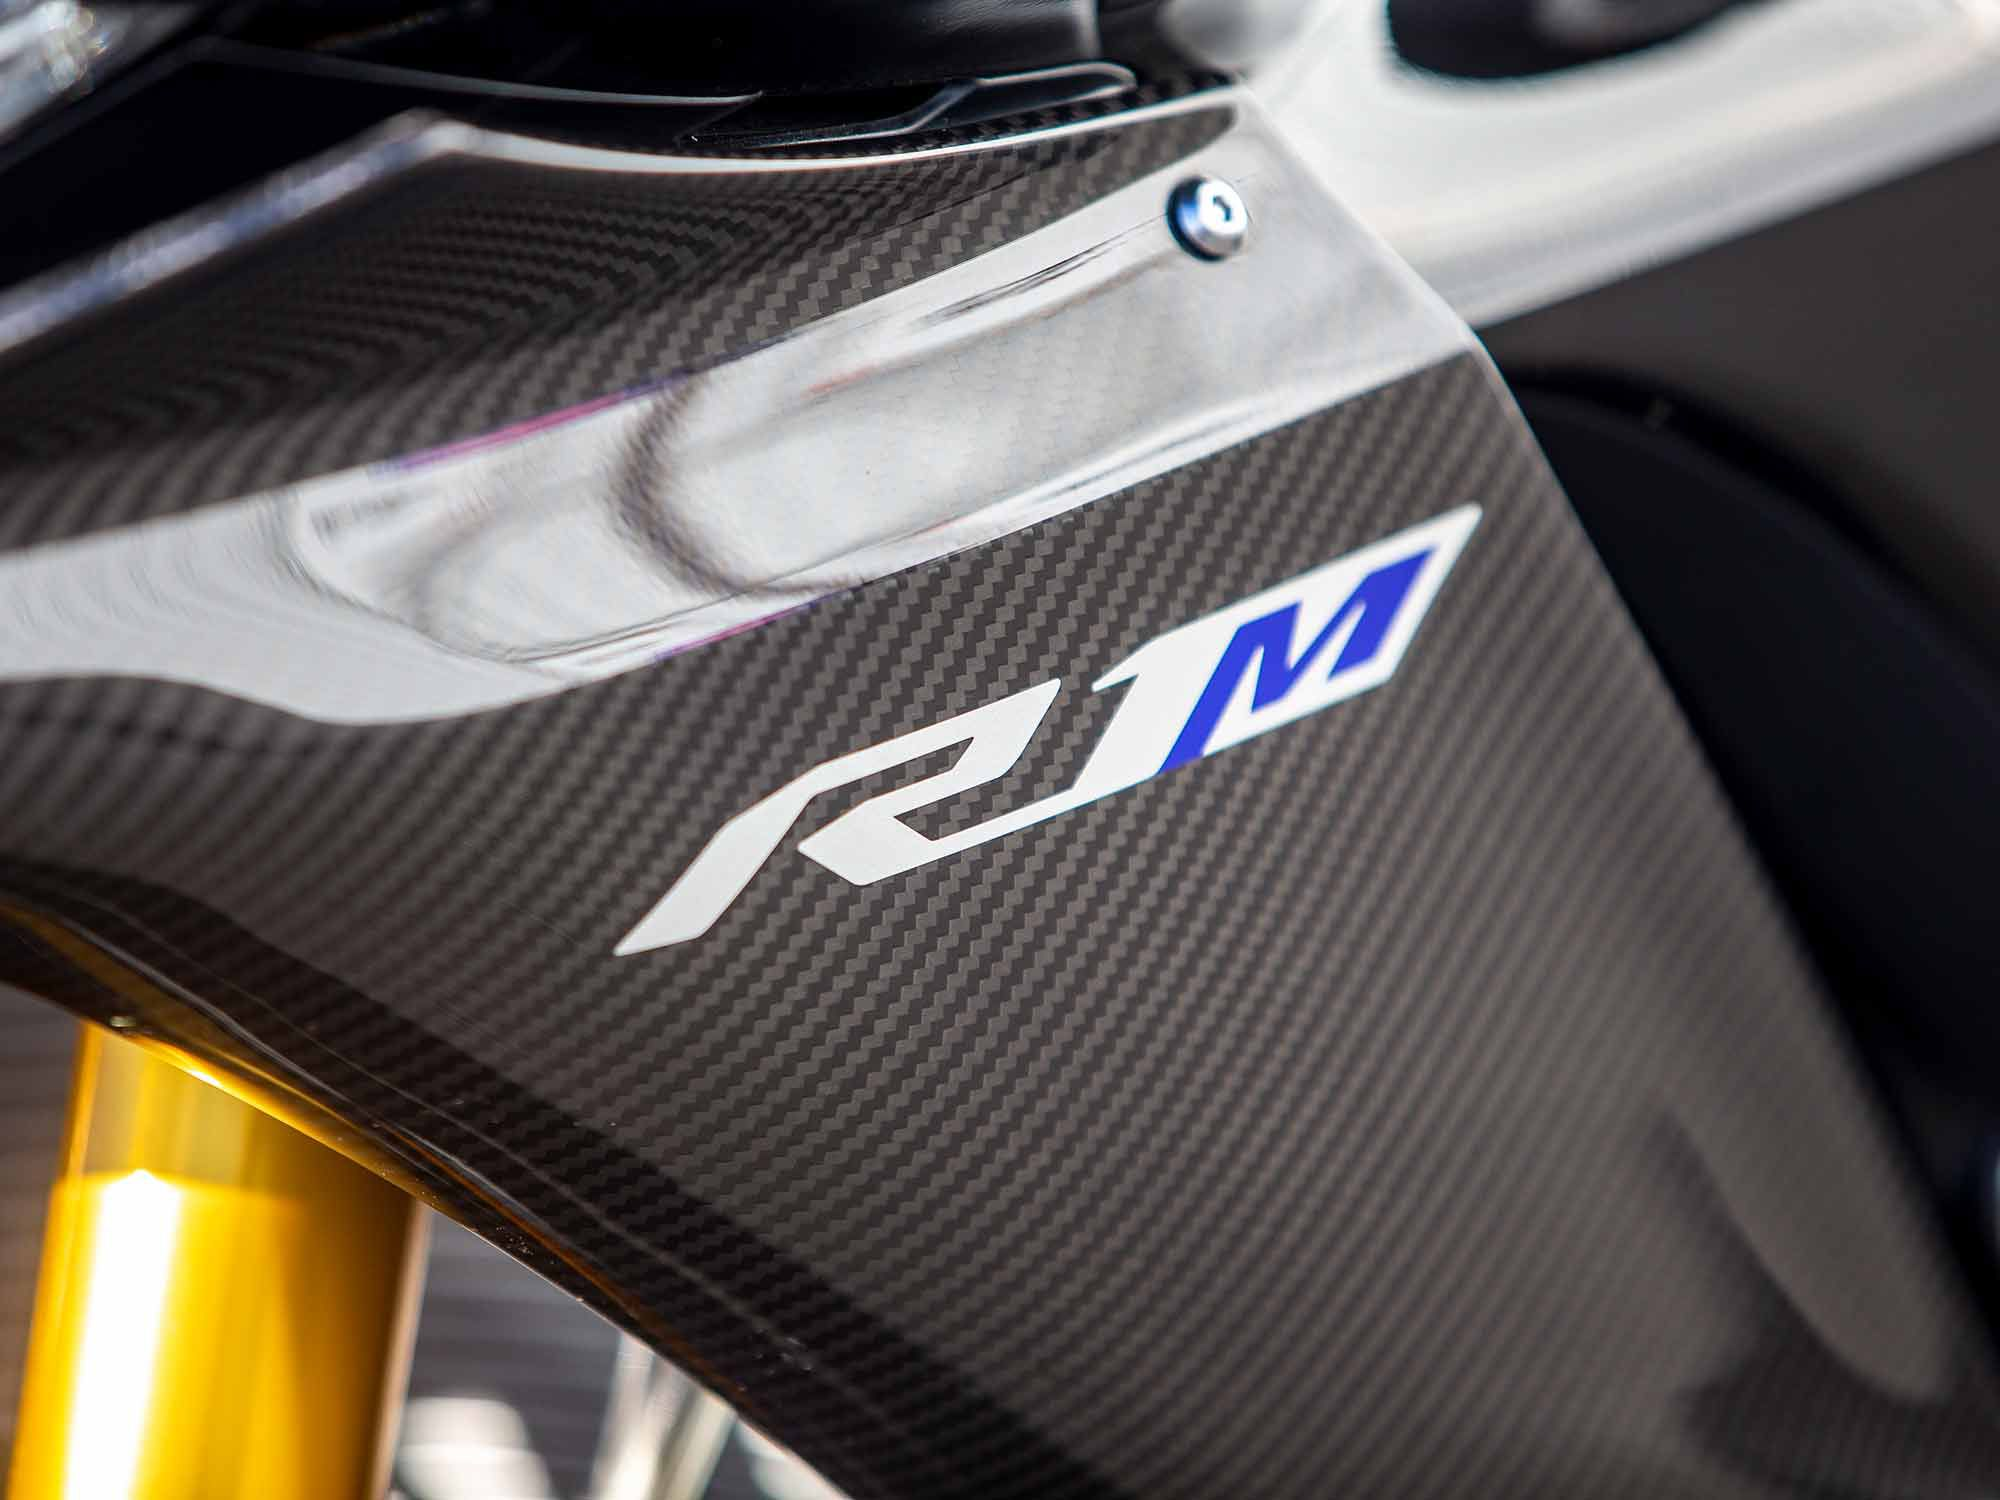 Introduced for the 2015 model year, the YZF-R1M is the pinnacle of Yamaha's production sportbike technology.